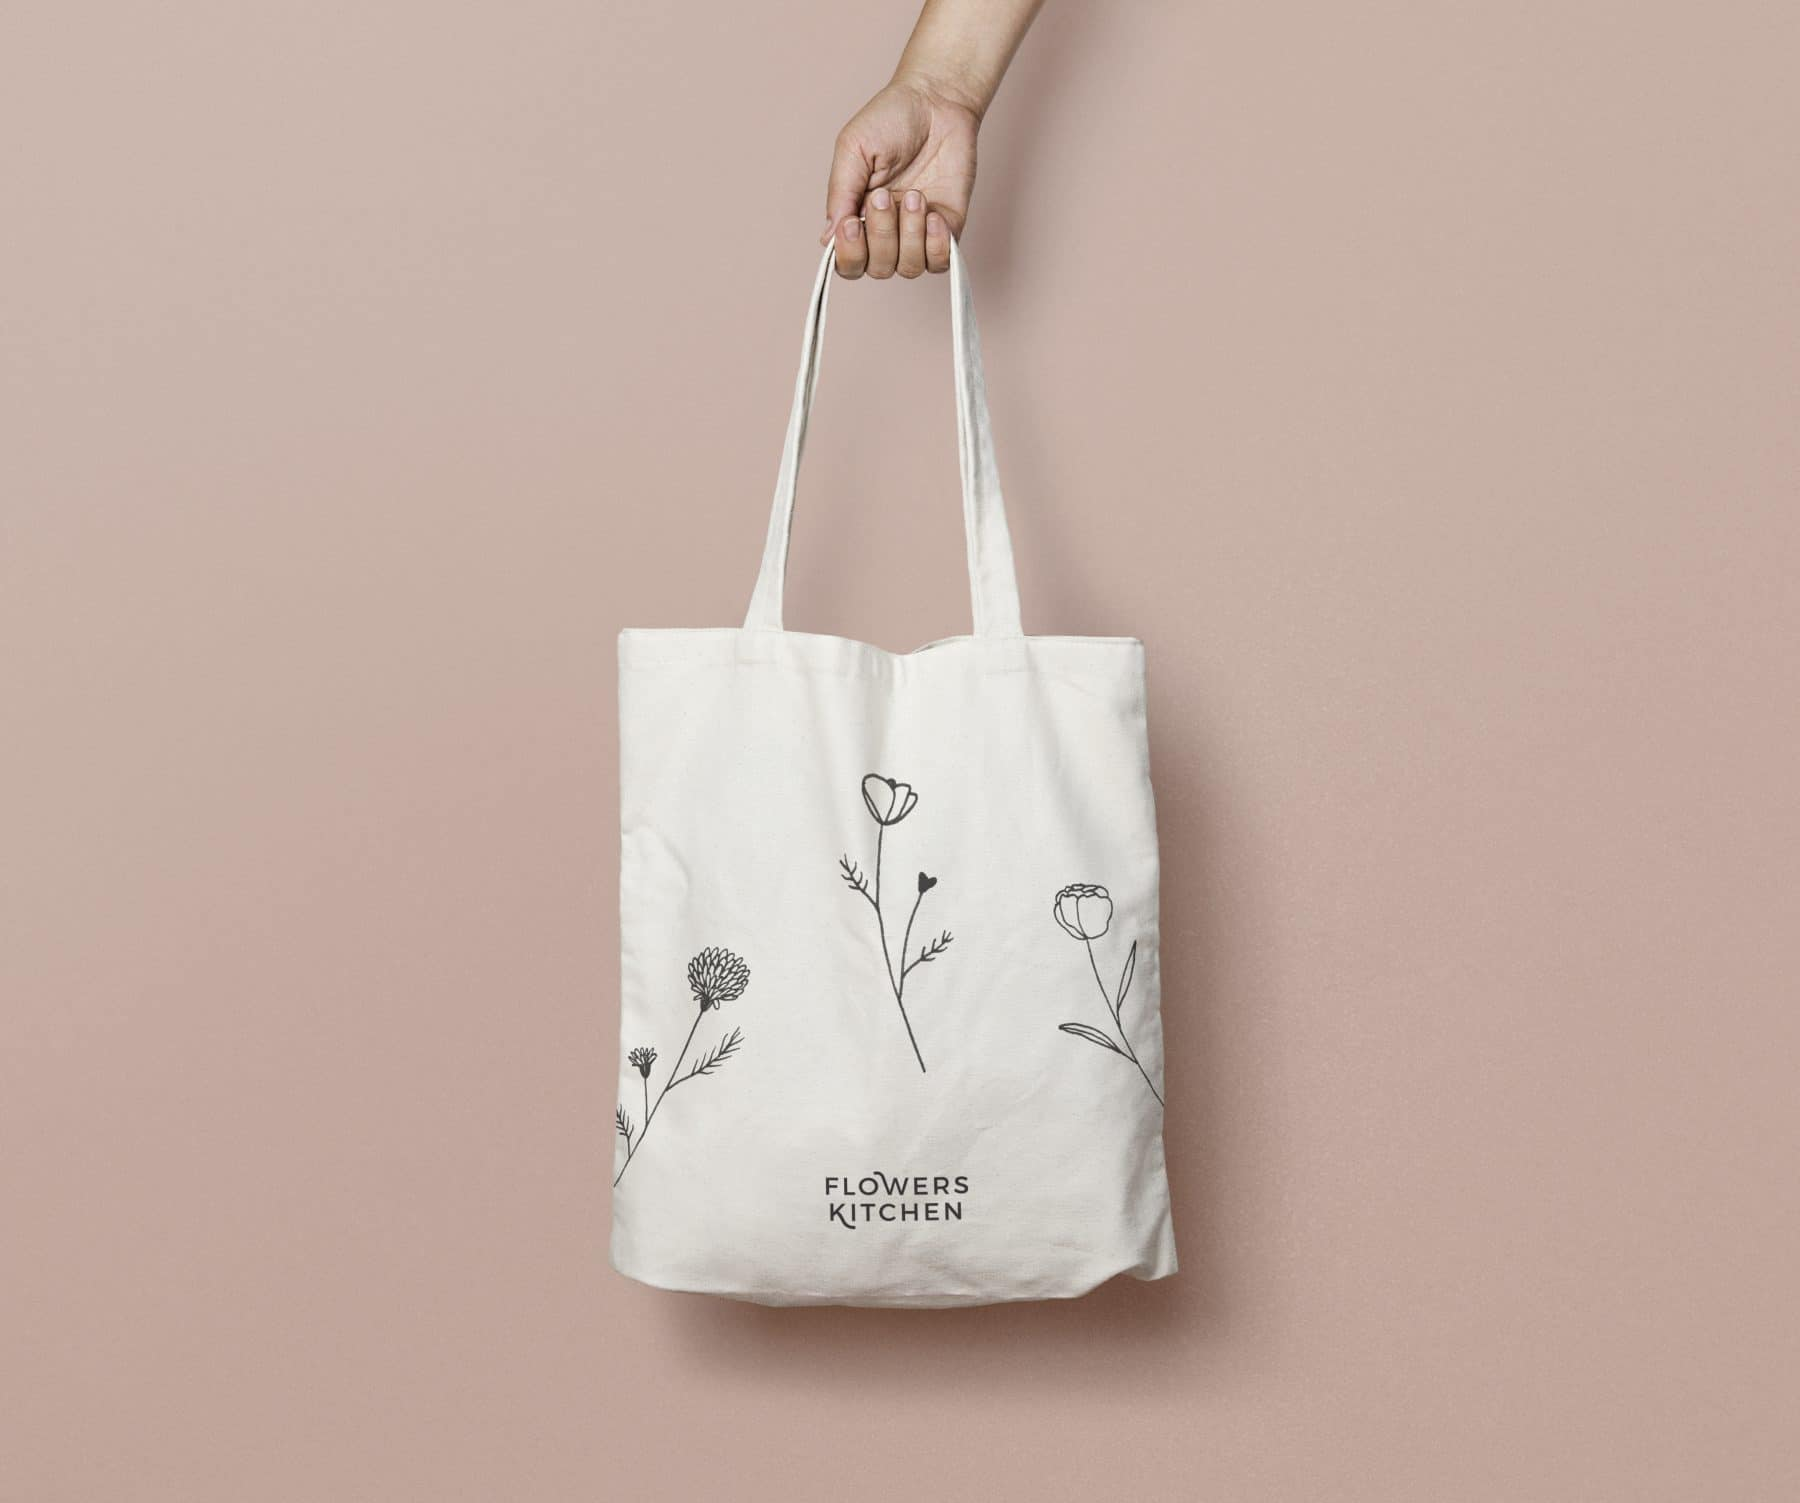 FK-Canvas-Tote Bag MockUp-02